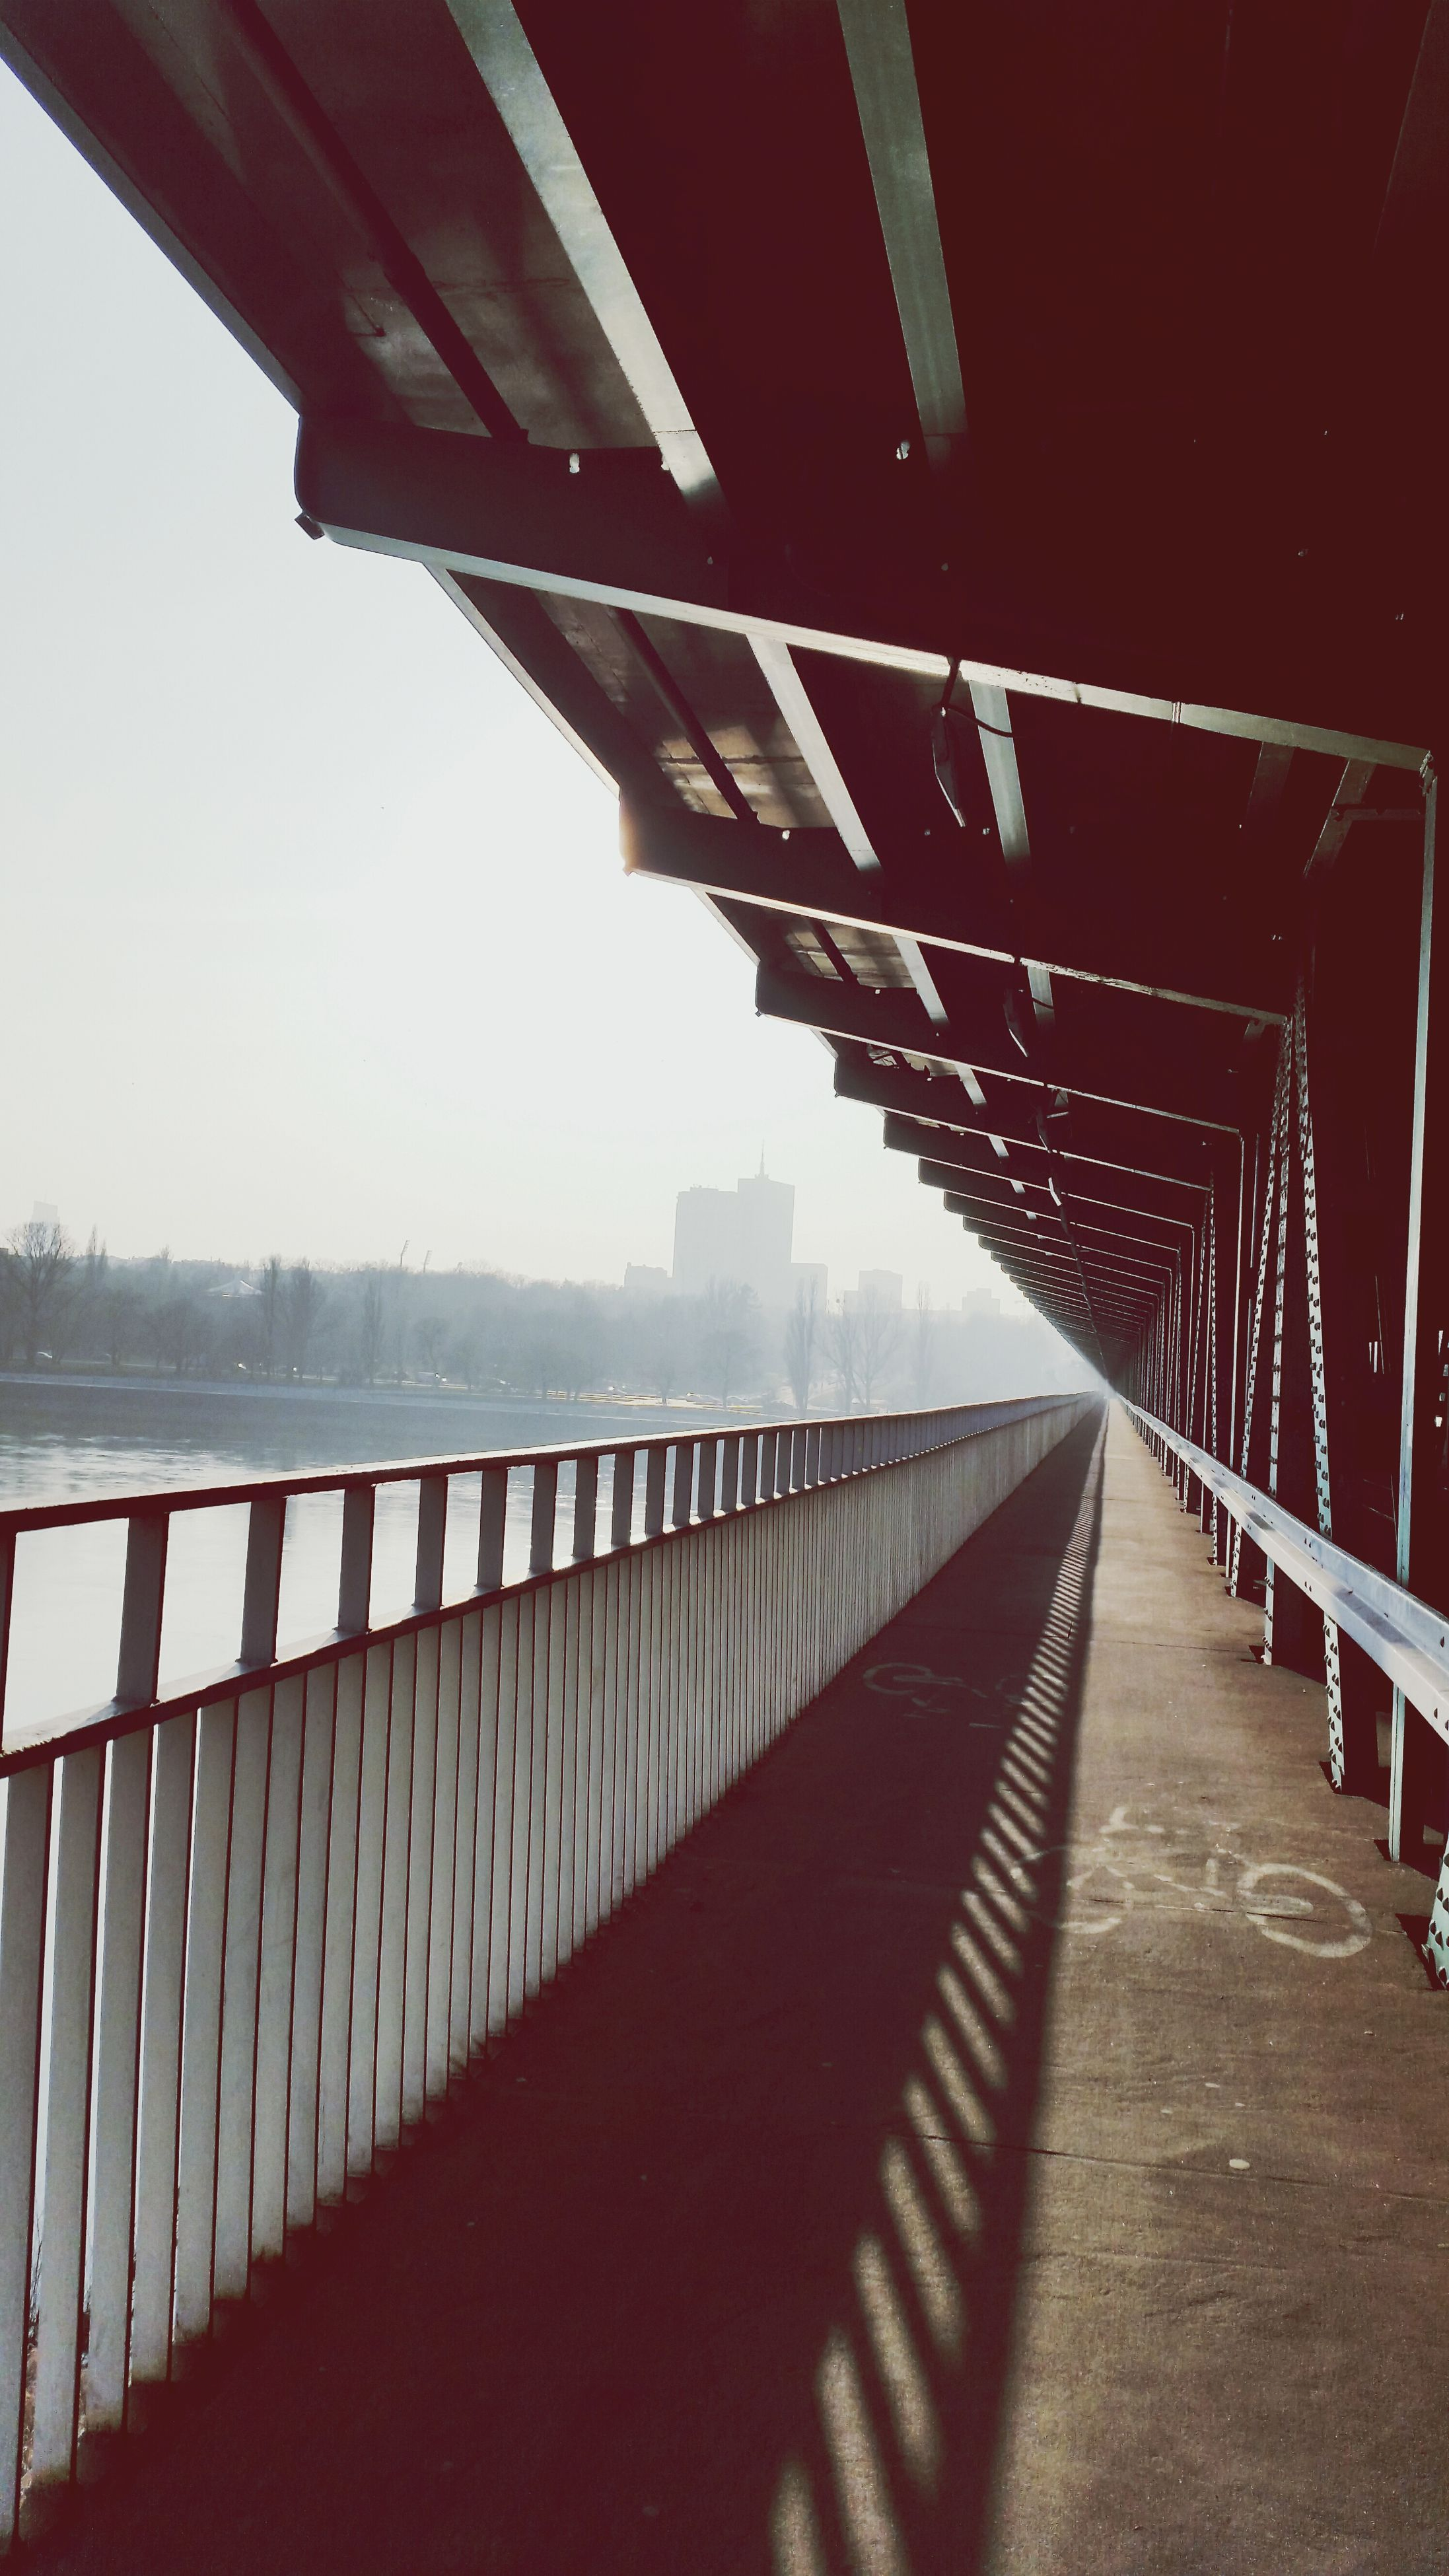 built structure, architecture, the way forward, railing, bridge - man made structure, diminishing perspective, connection, vanishing point, bridge, long, sky, water, building exterior, footbridge, city, transportation, river, outdoors, no people, clear sky